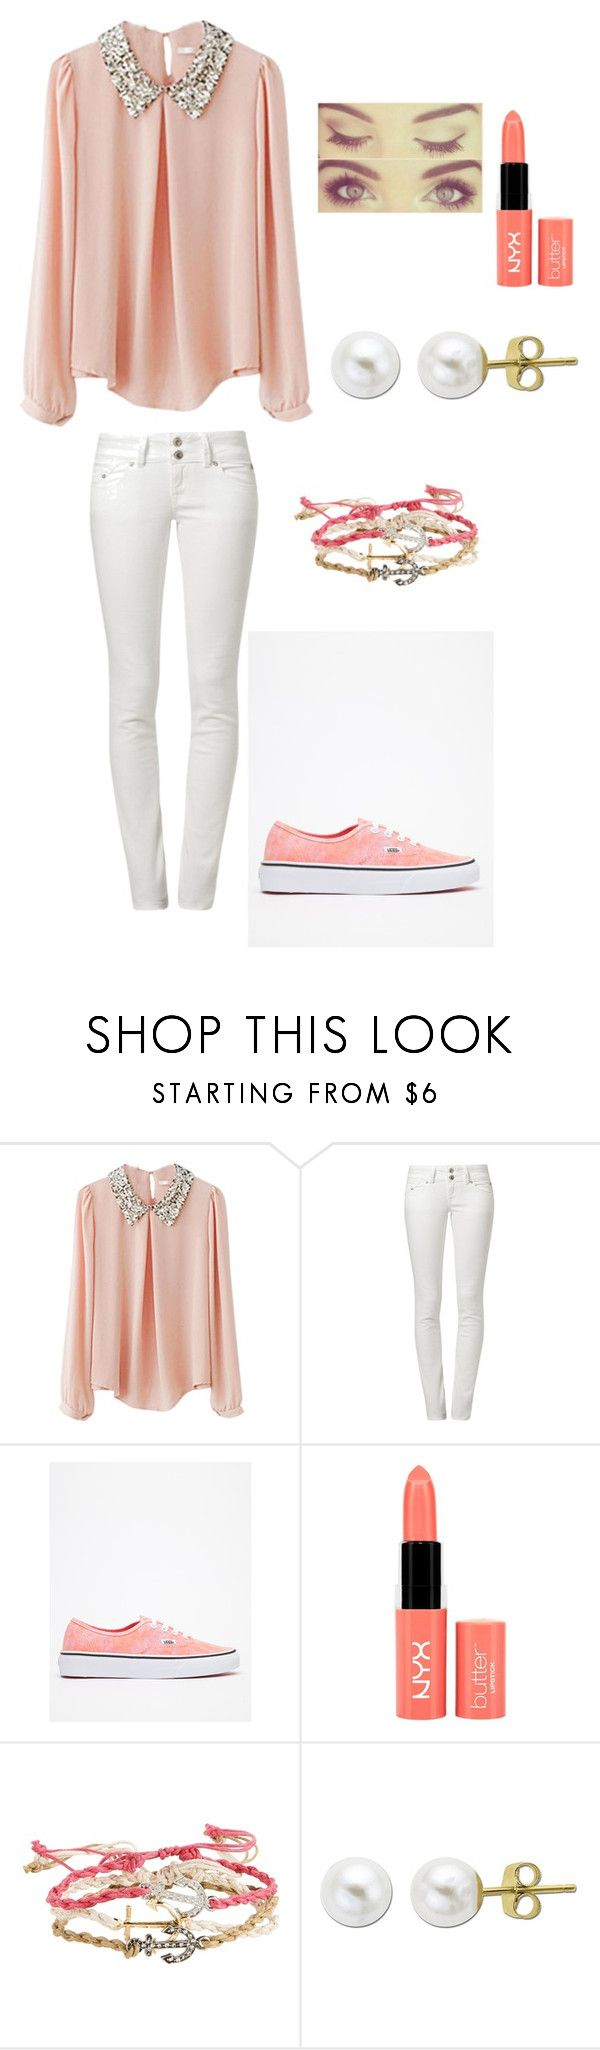 """""""Untitled #358"""" by sarahcarlile ❤ liked on Polyvore featuring LTB by Little Big, Vans, Aéropostale, Lord & Taylor, women's clothing, women's fashion, women, female, woman and misses"""